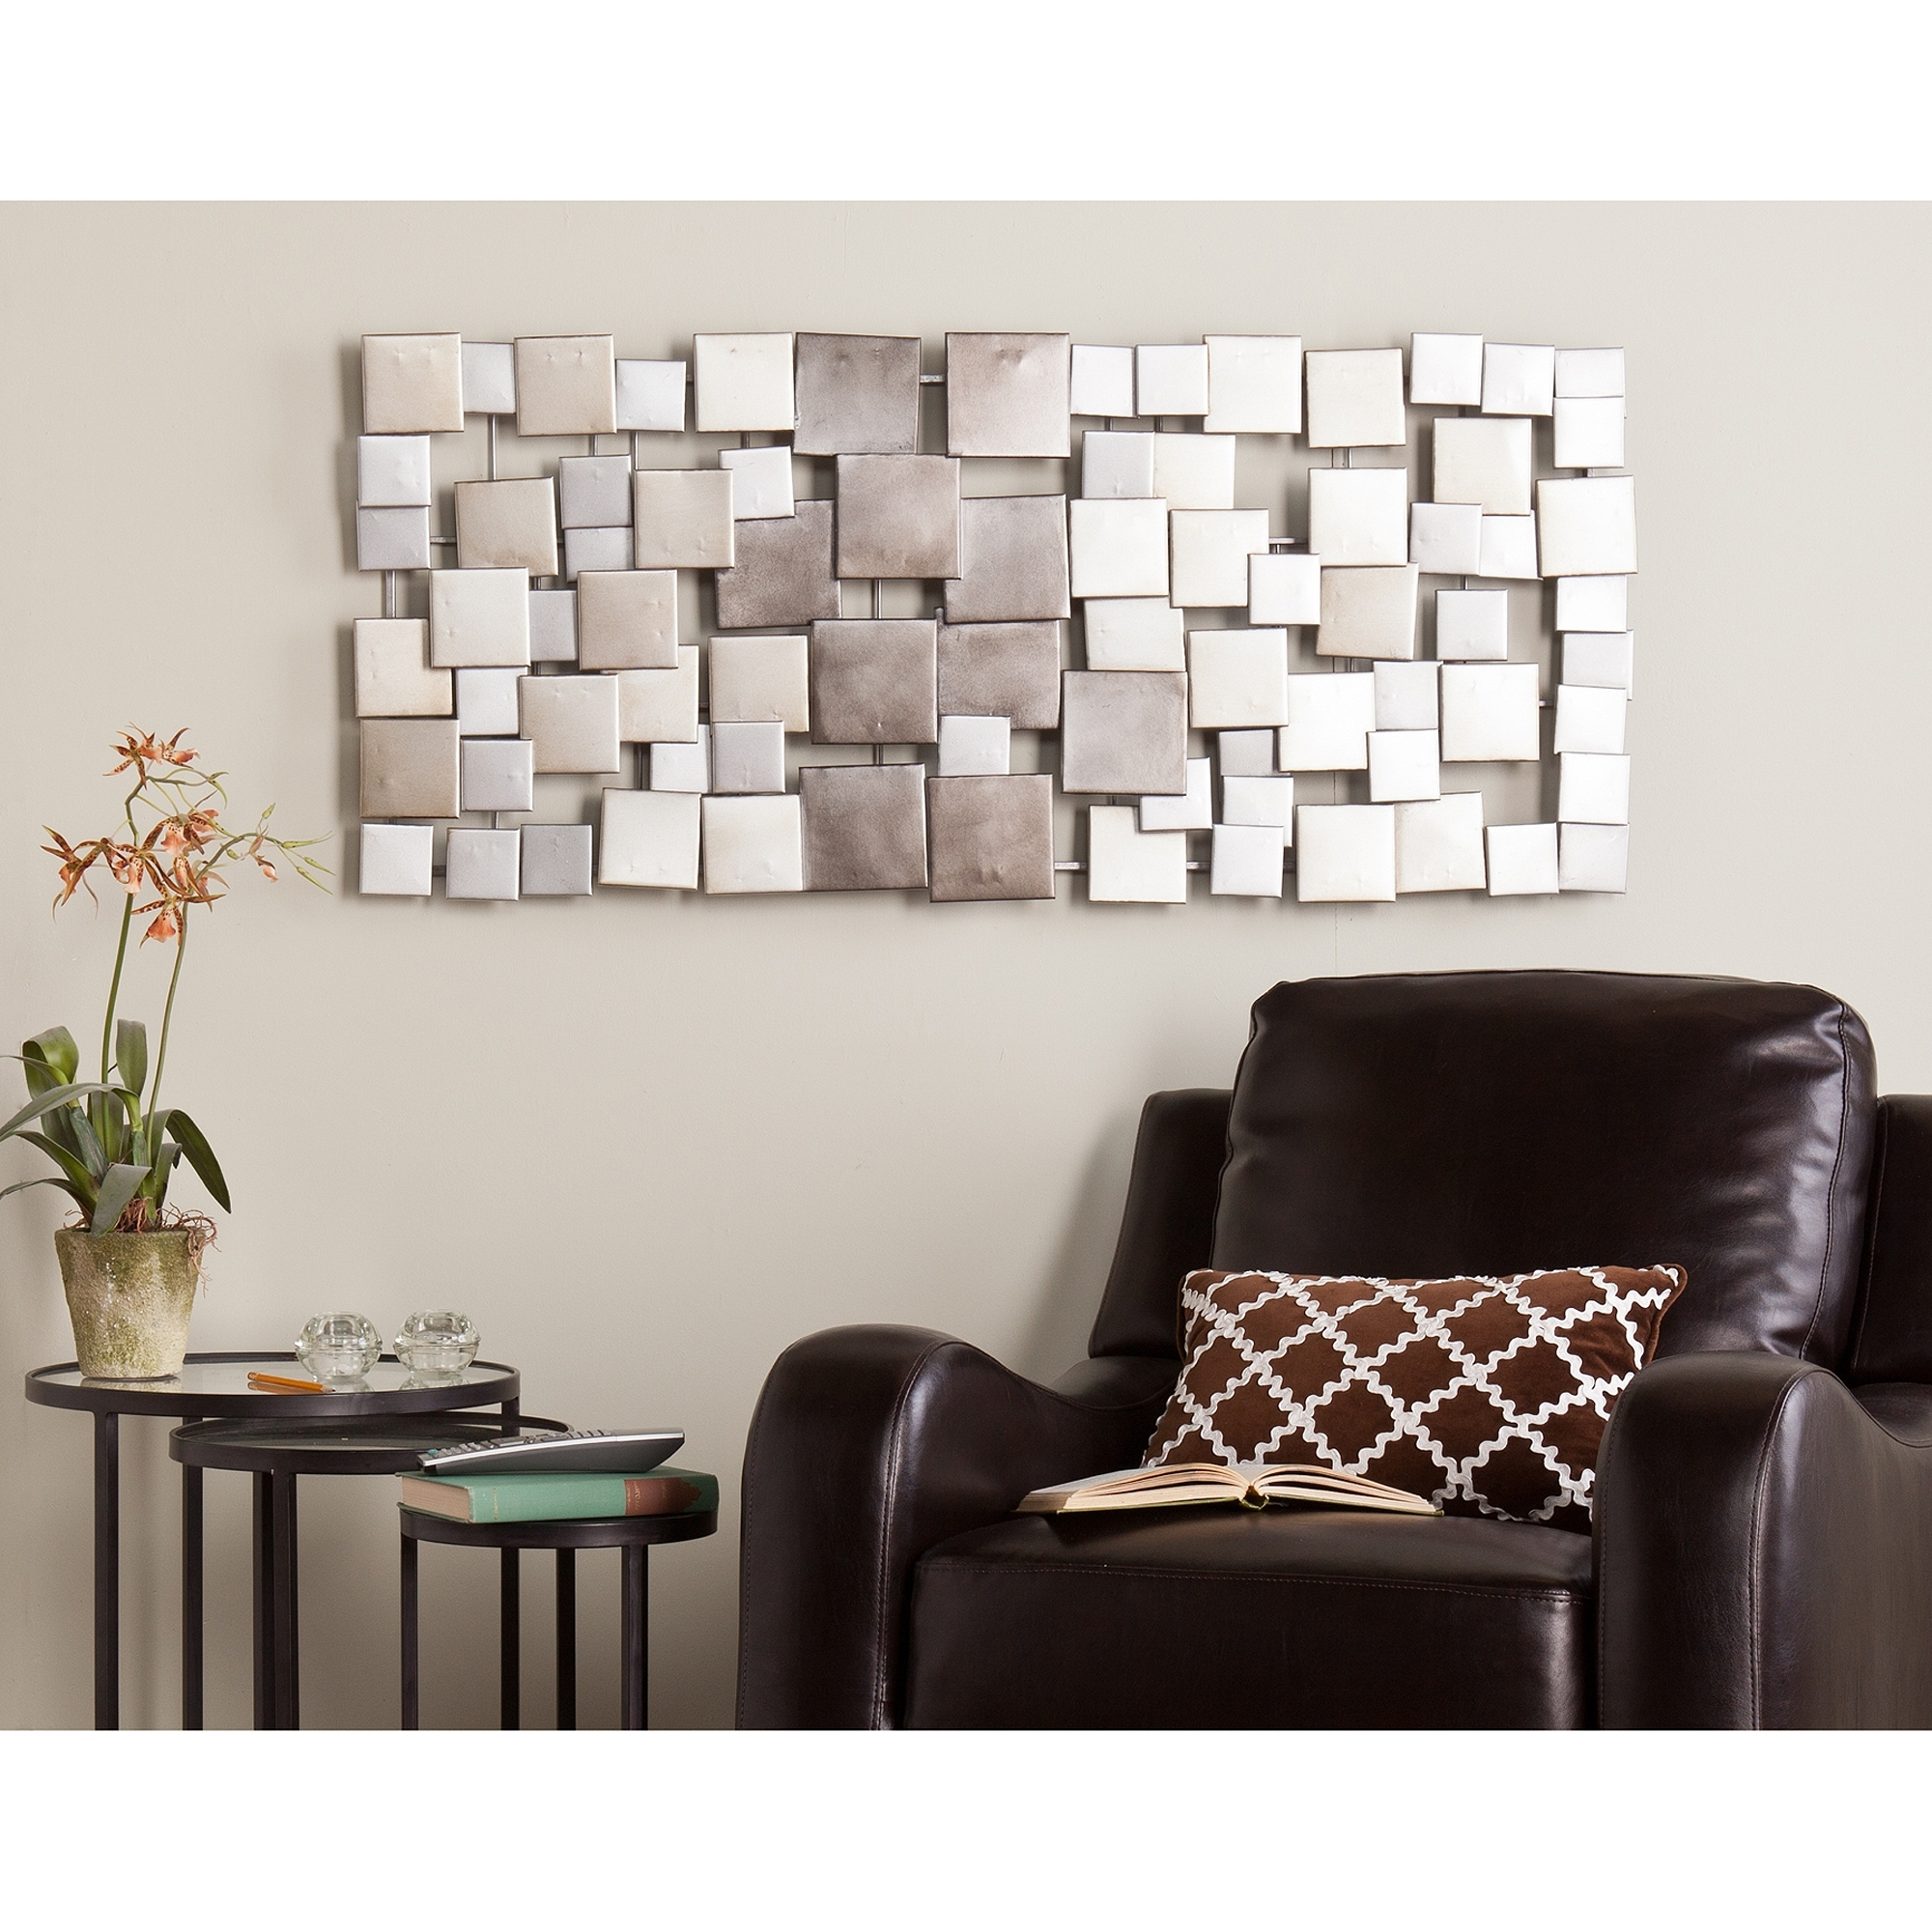 Rectangular Metal Wall Art Pertaining To Current Metal Wall Art – Walmart (View 8 of 15)